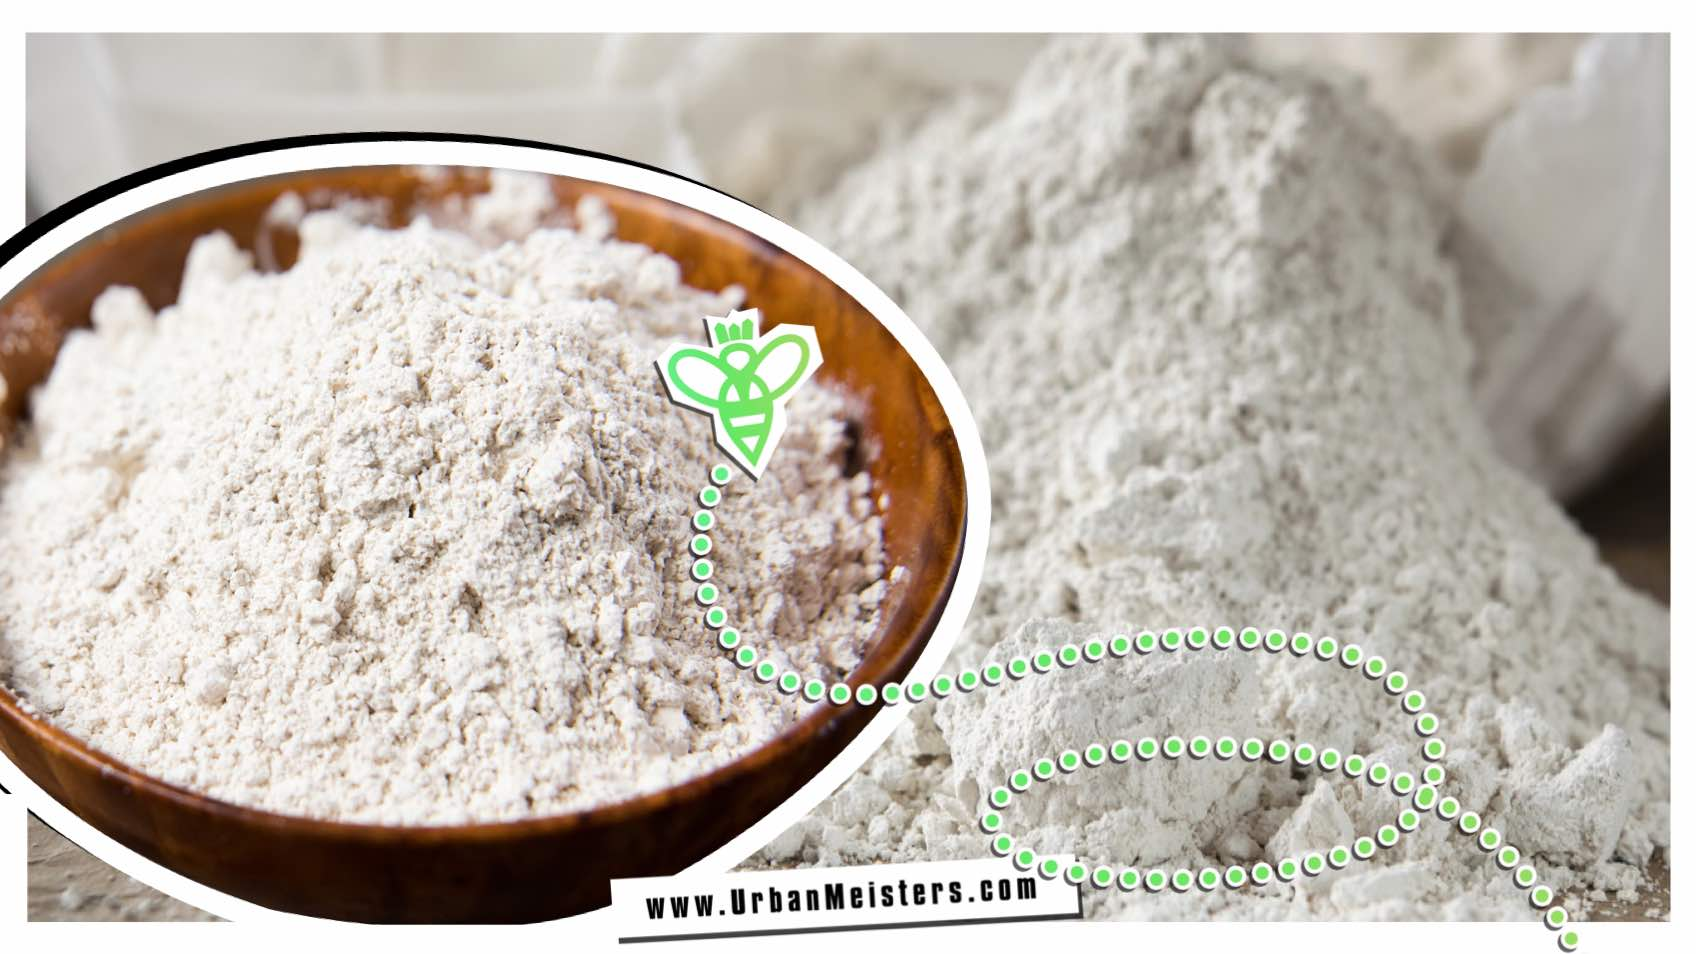 [ZERO WASTE] 40+ DIY uses of Diatomaceous Earth for health, home & personal care